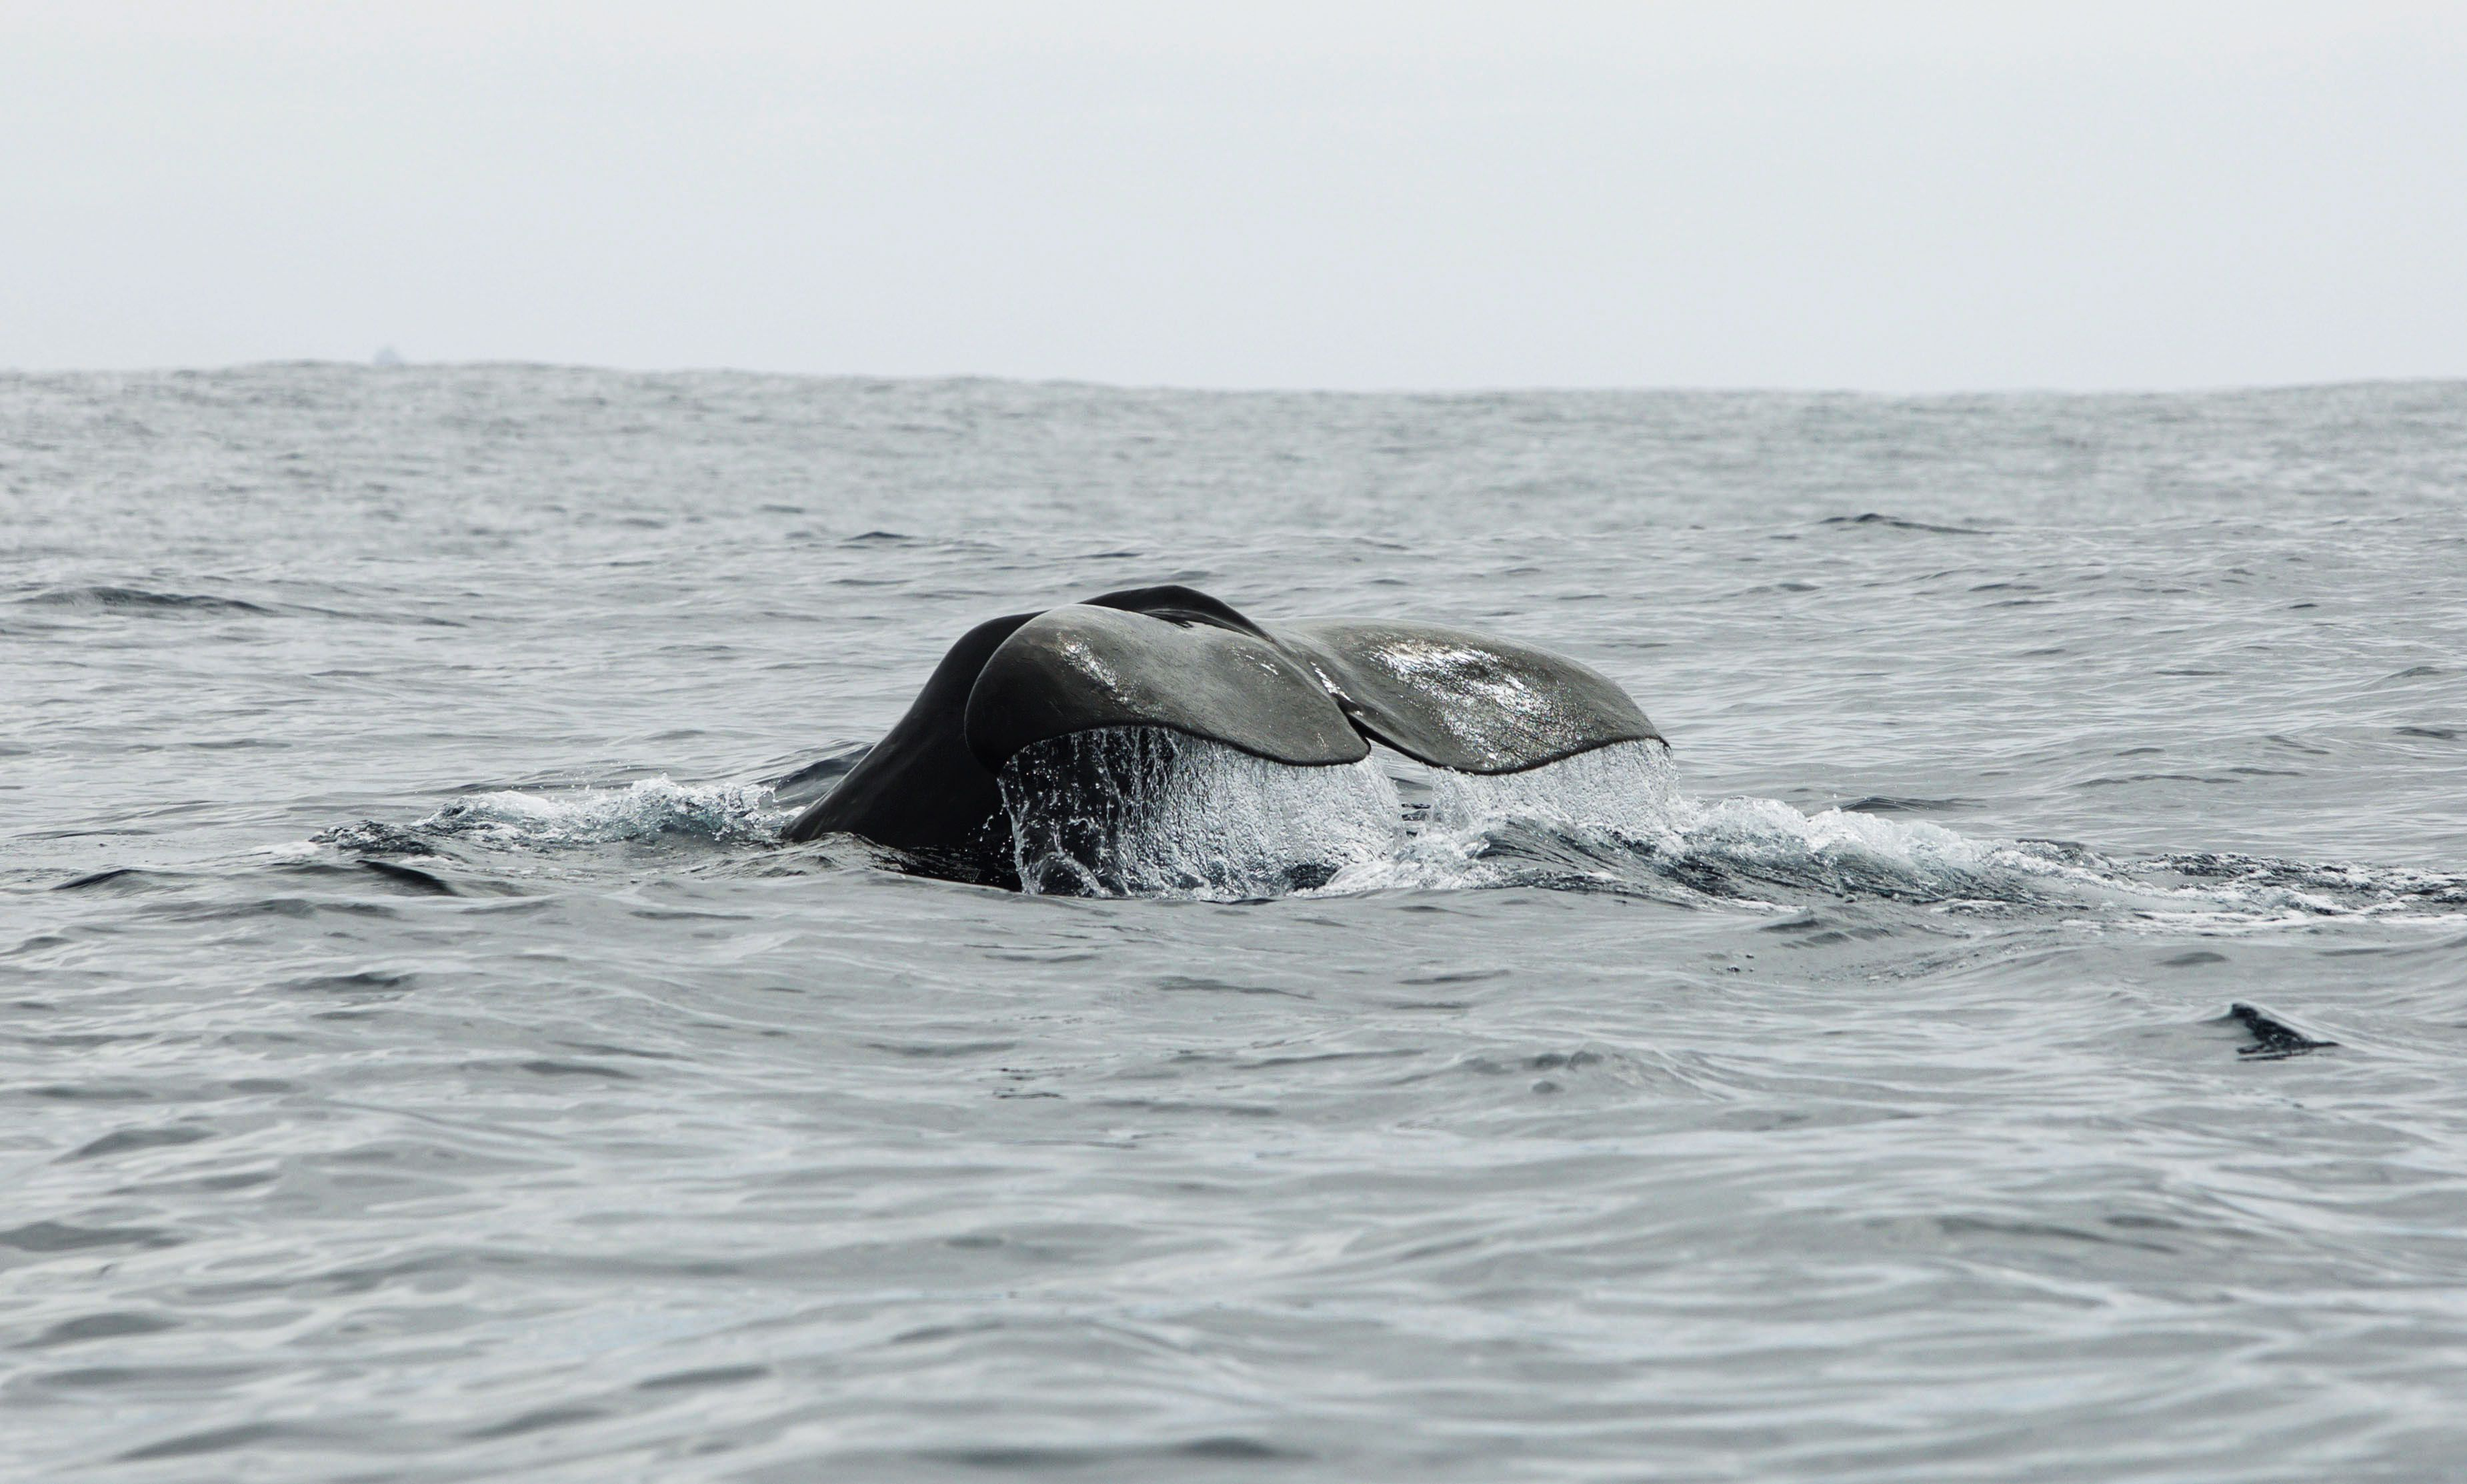 A whale's tale coming out of the water off the coast of Iceland